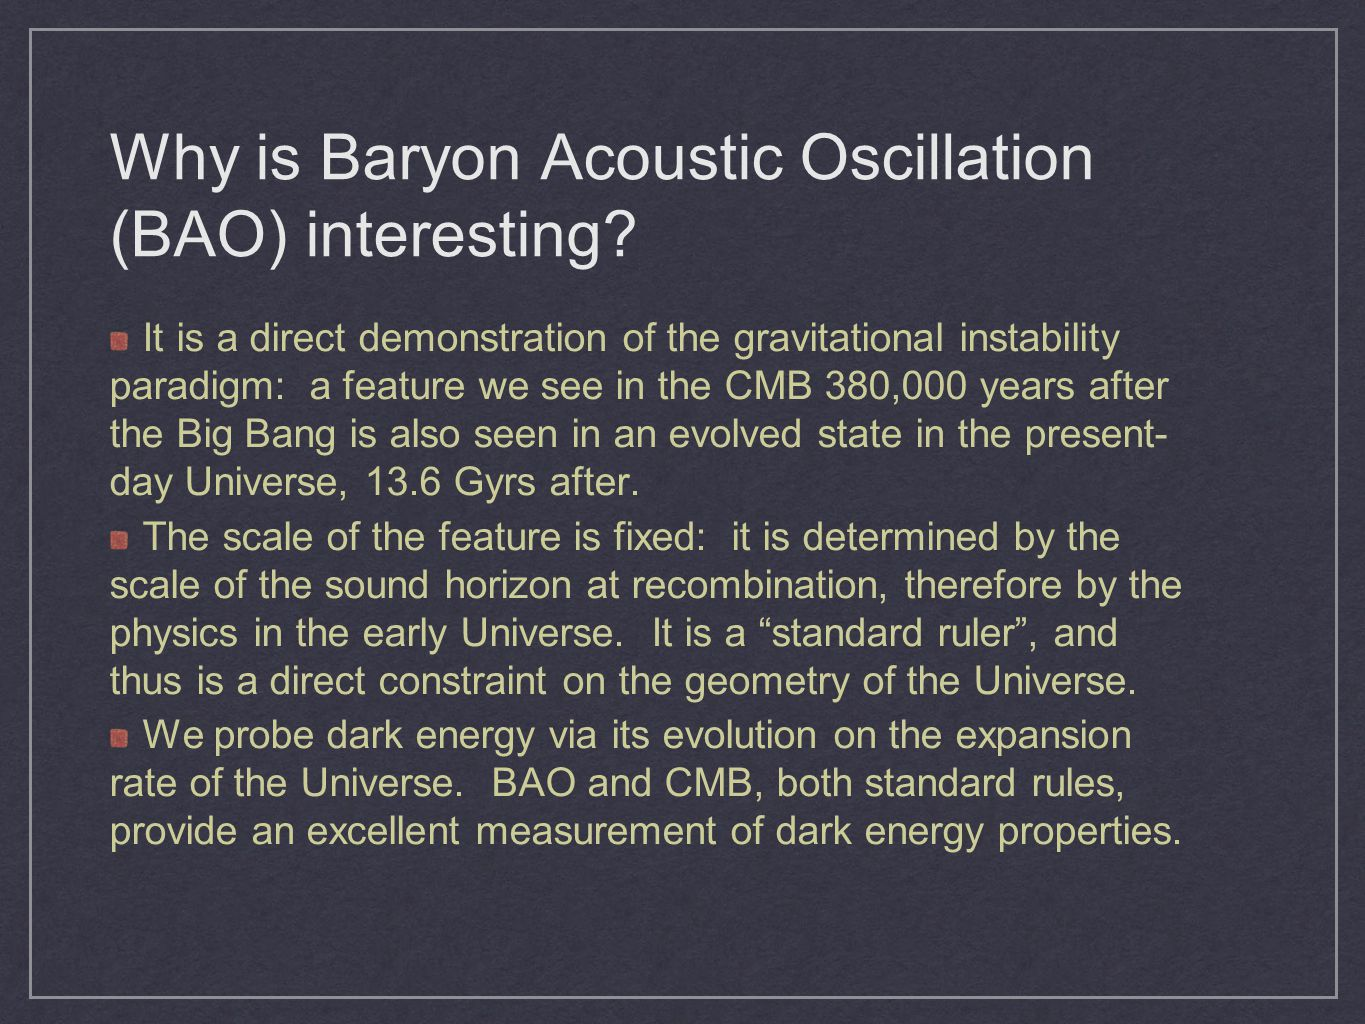 Why is Baryon Acoustic Oscillation (BAO) interesting